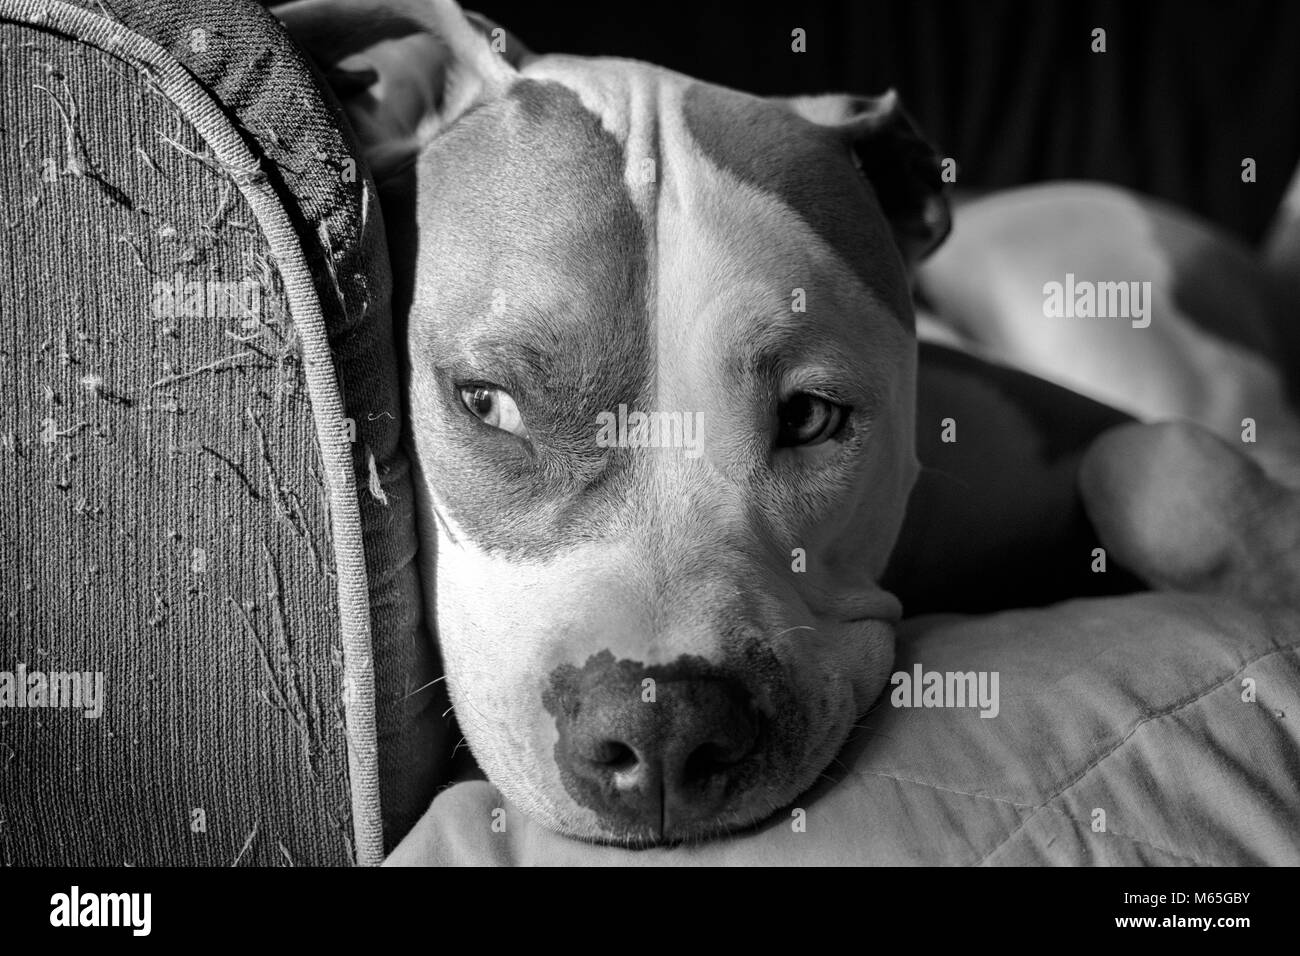 Close-up of an American Pit Bull Terrier (Canis lupus familiaris) sitting on a couch in sunlight and shadows - Stock Image